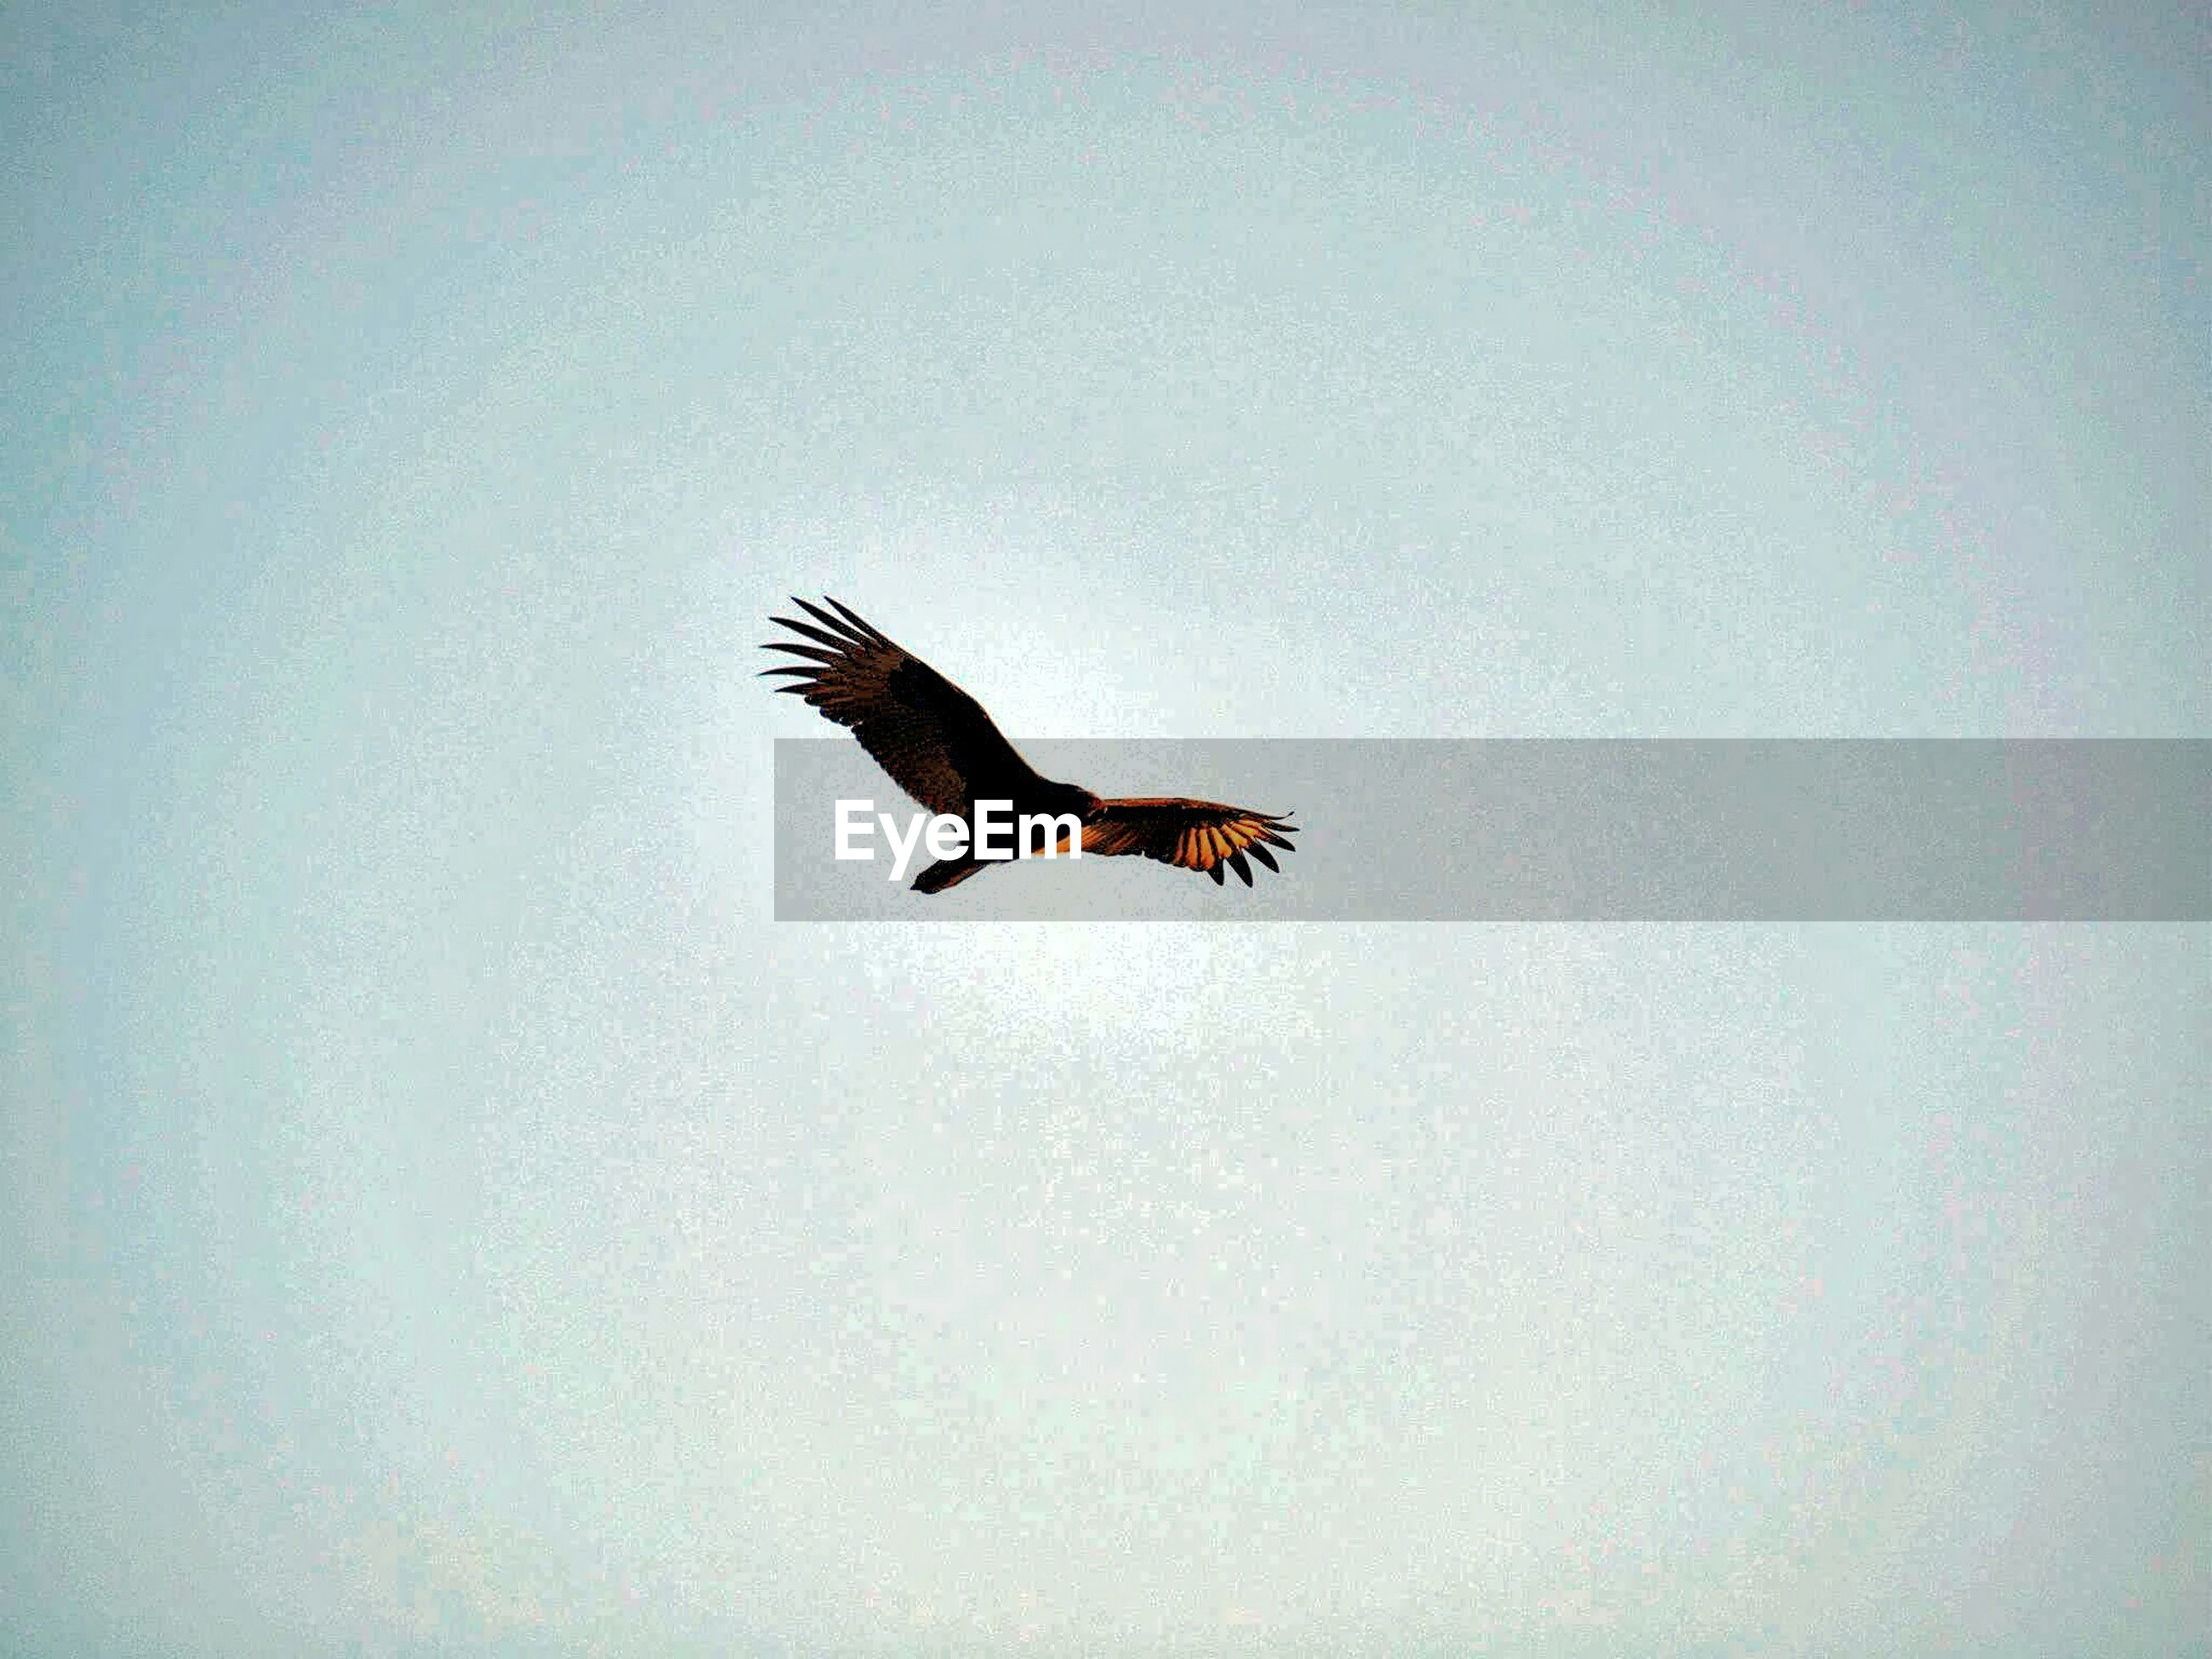 Low angle view of eagle flying in clear sky